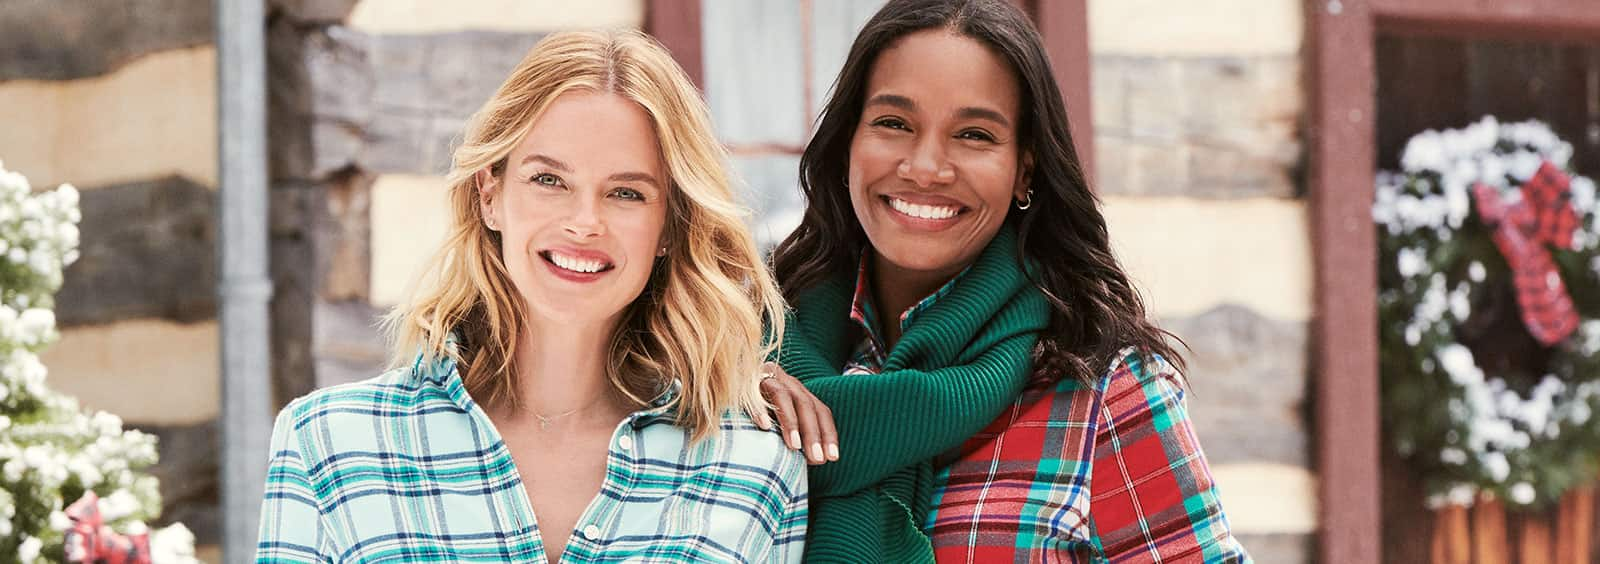 Best Tips to Soften Your Flannel Shirt